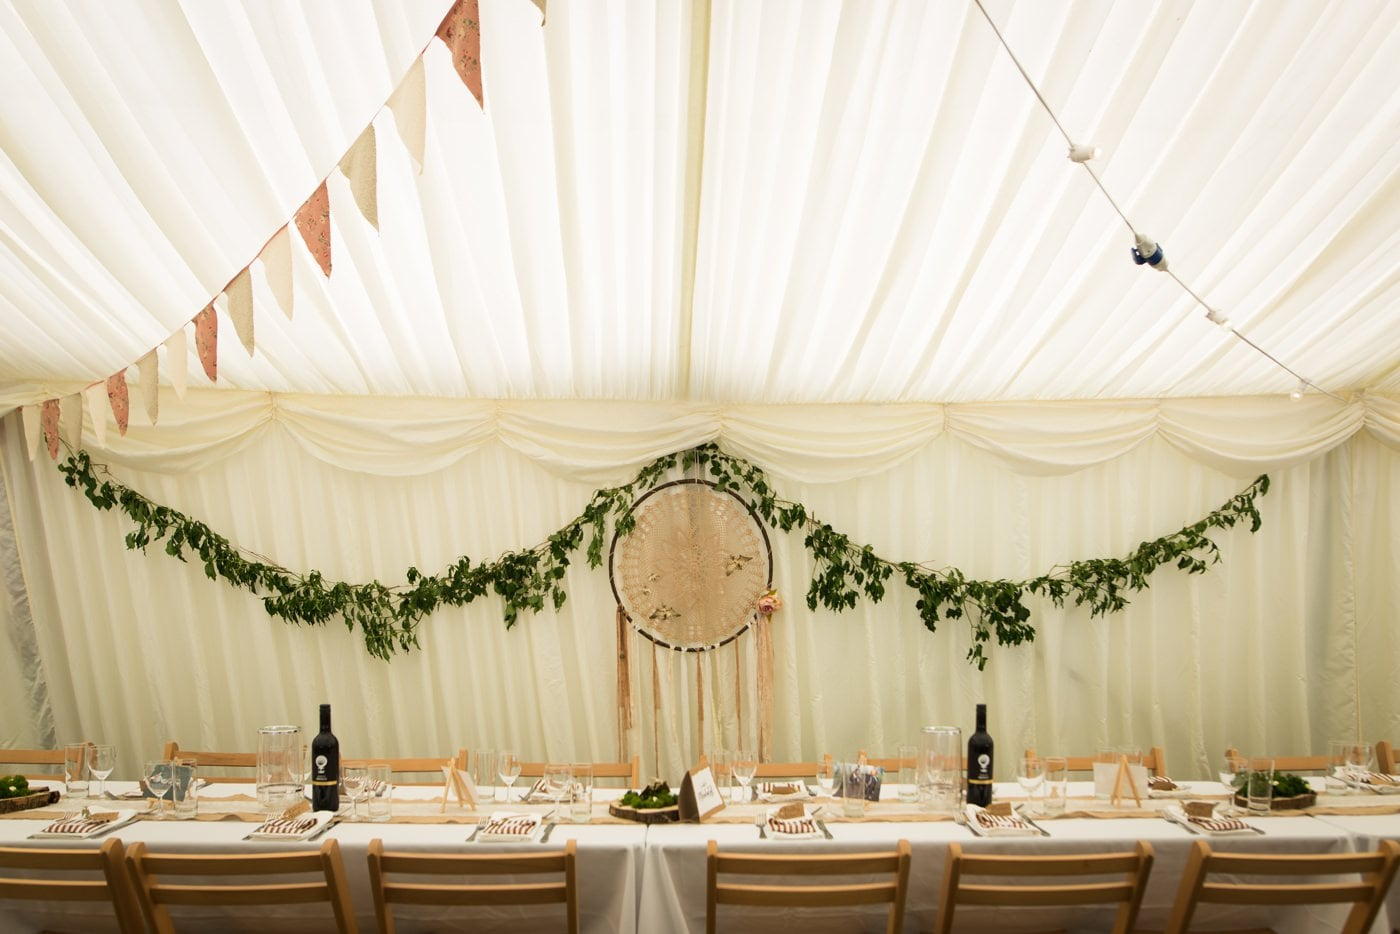 Boho wedding decor pics by Milton Abbas Wedding Photographer